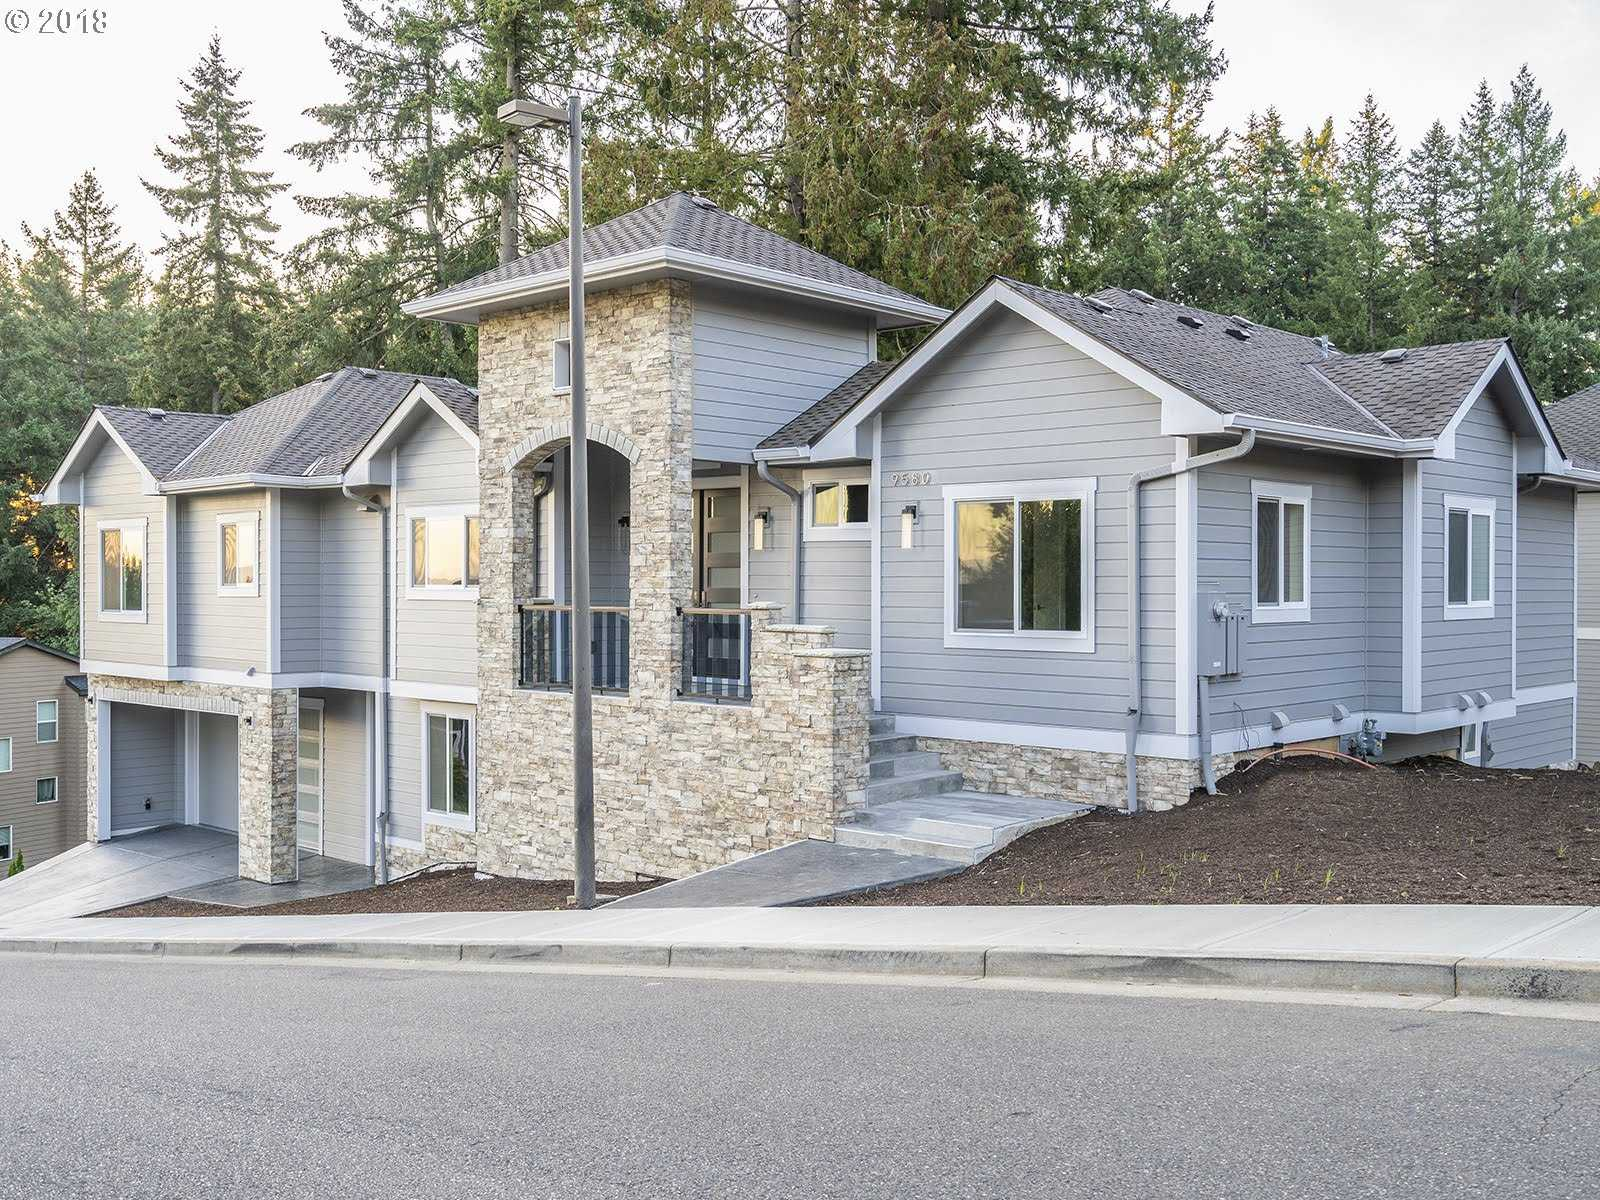 $974,900 - 6Br/5Ba -  for Sale in Murray Hill Area, Beaverton